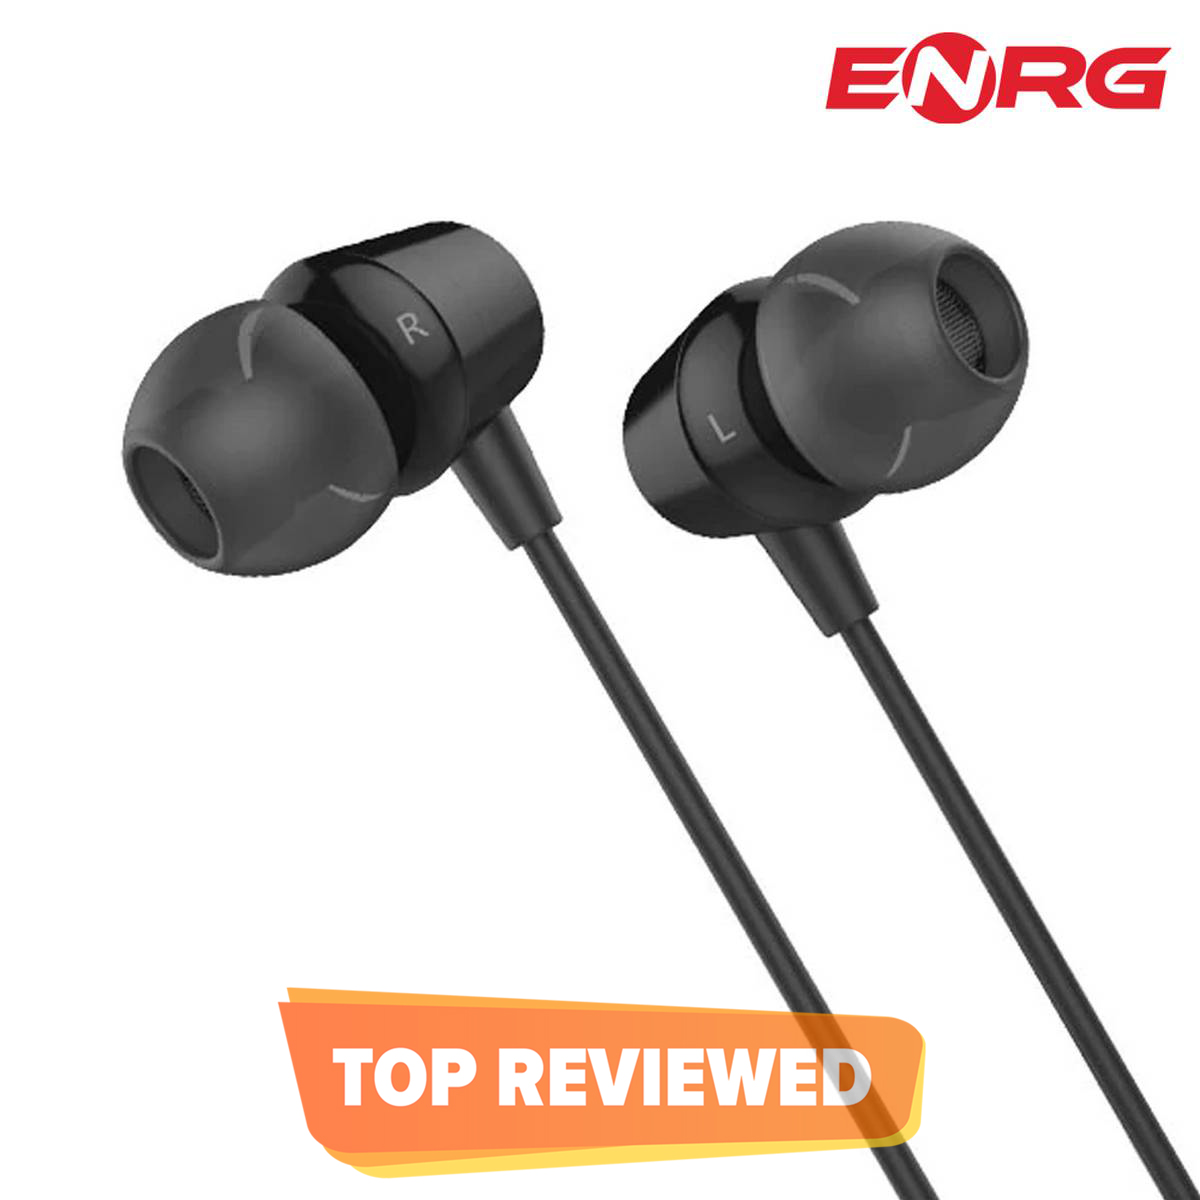 ENRG G4 Wired Earphones Sport In-Ear Deep Bass Stereo Earbuds Earphones Handfree for All Smartphones Android & IOS - Black